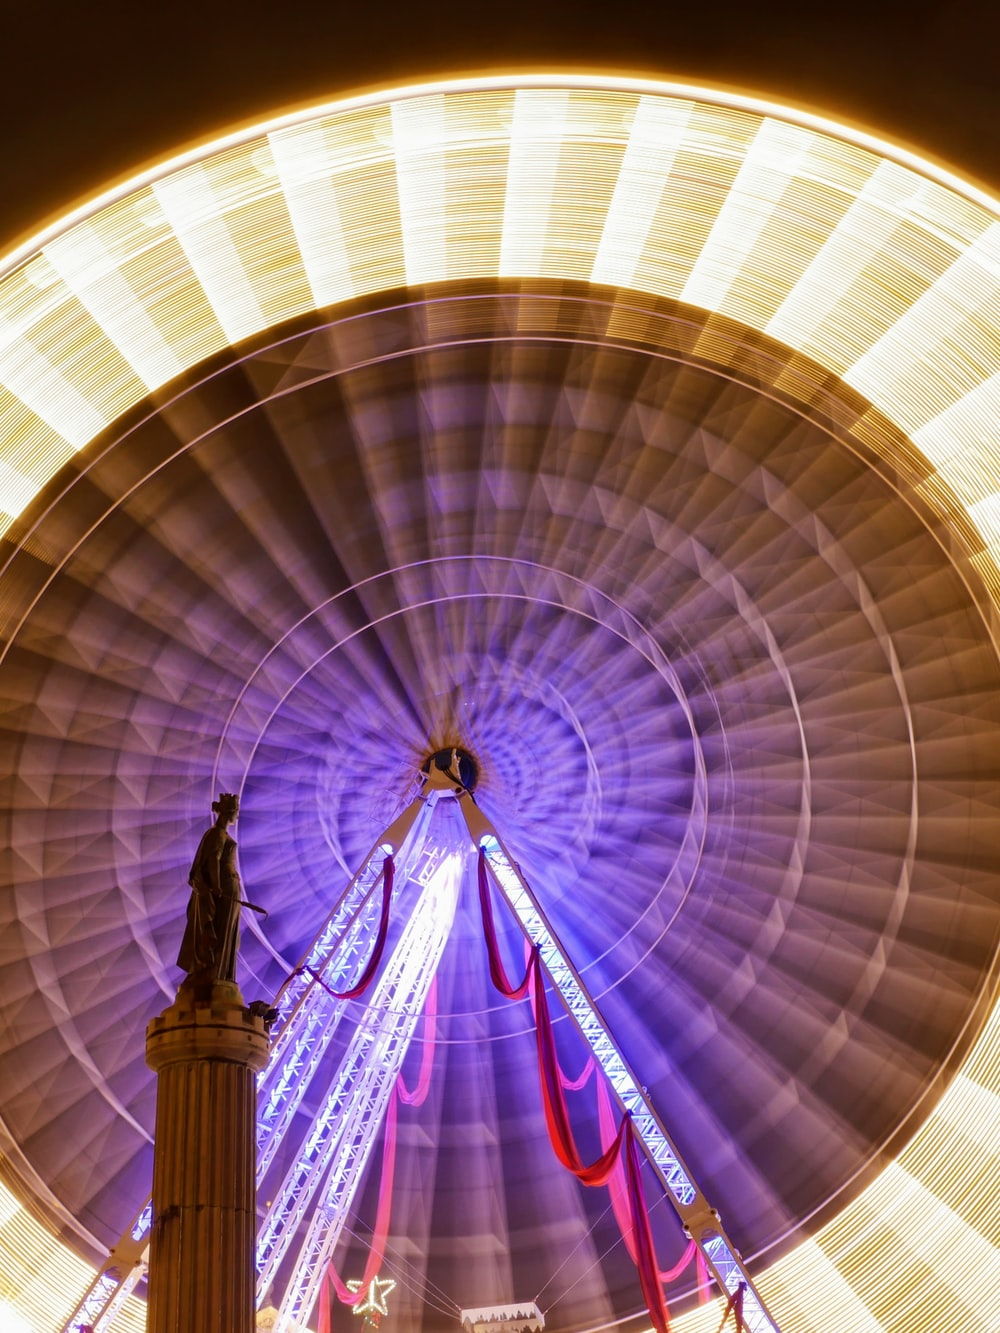 lighted ferris wheel in motion time lapse photo